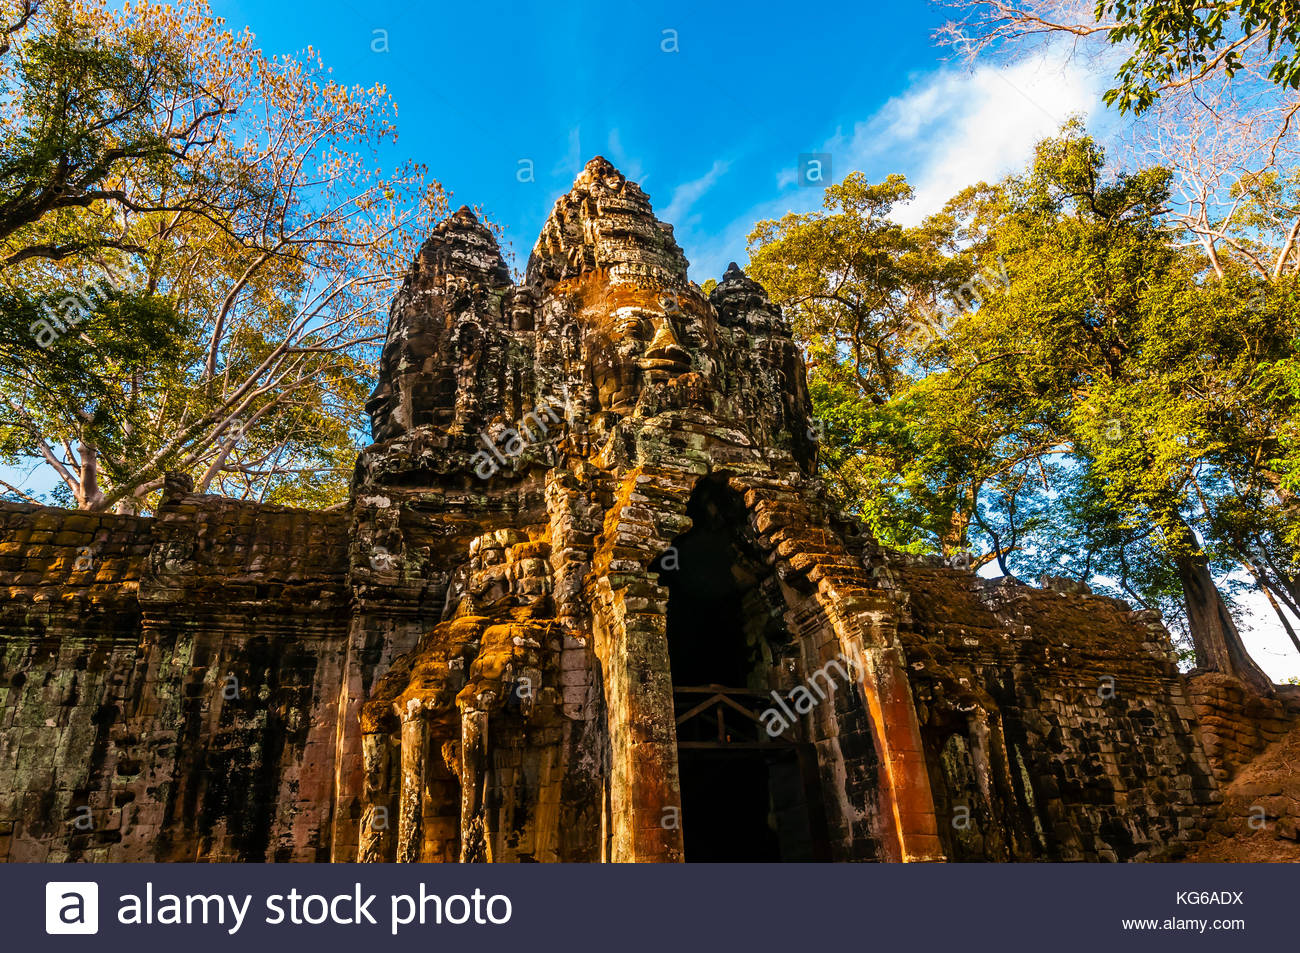 One of the gates adorned with stone faces, Angkor Tom (Angkor Wat complex), Cambodia. - Stock Image